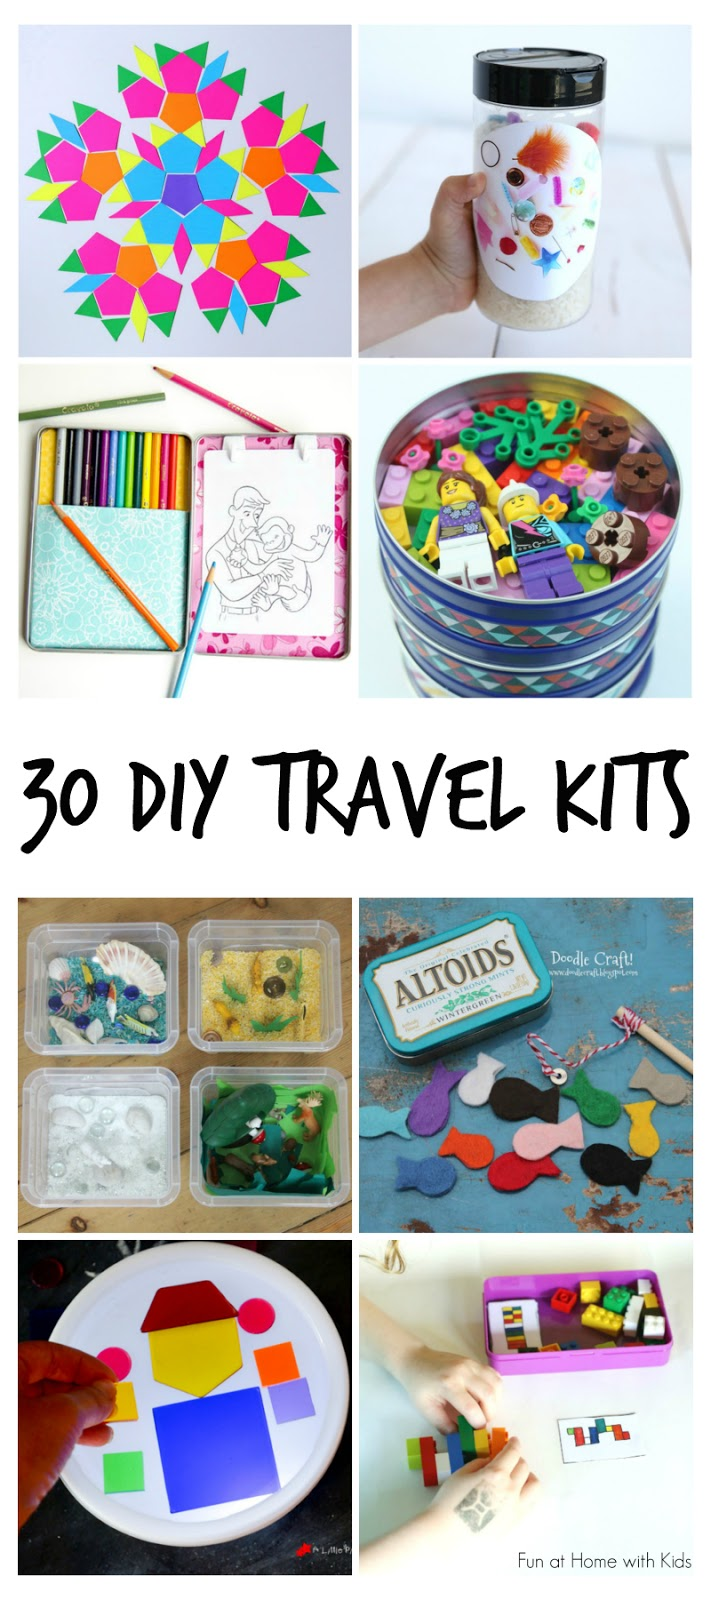 How to Make Traveling with Kids Simple and StressFree